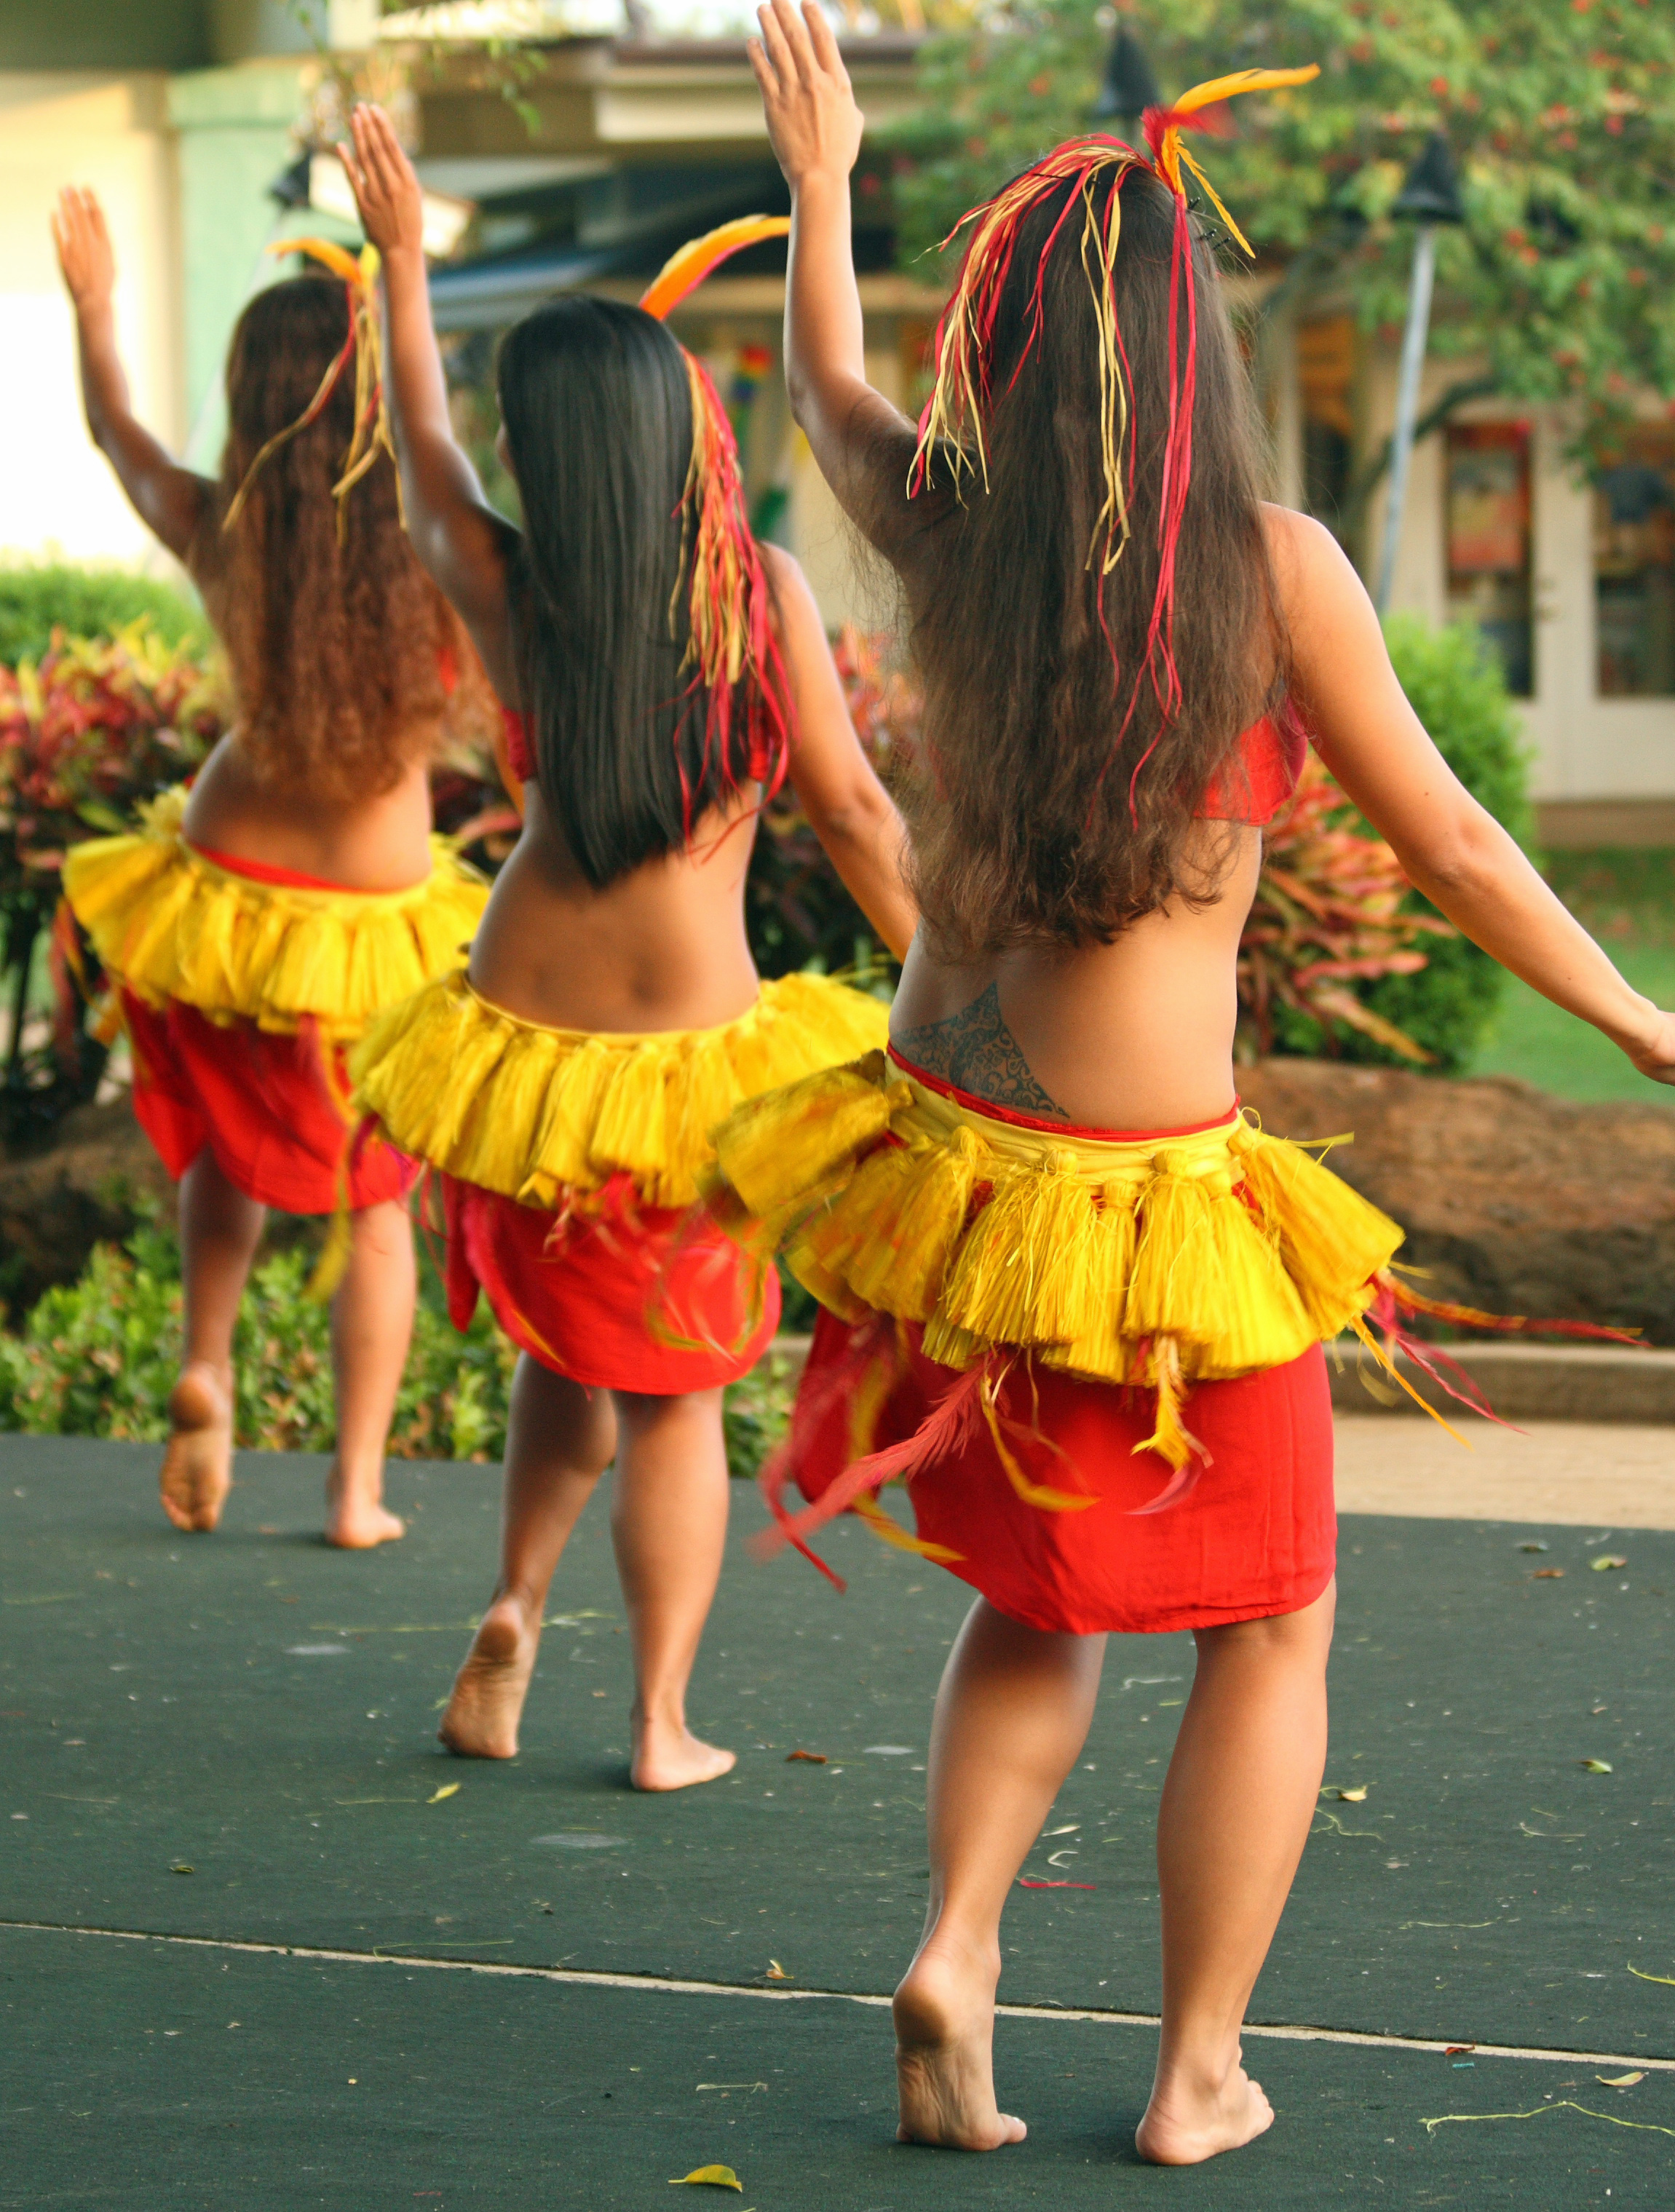 Naked hula dance agree